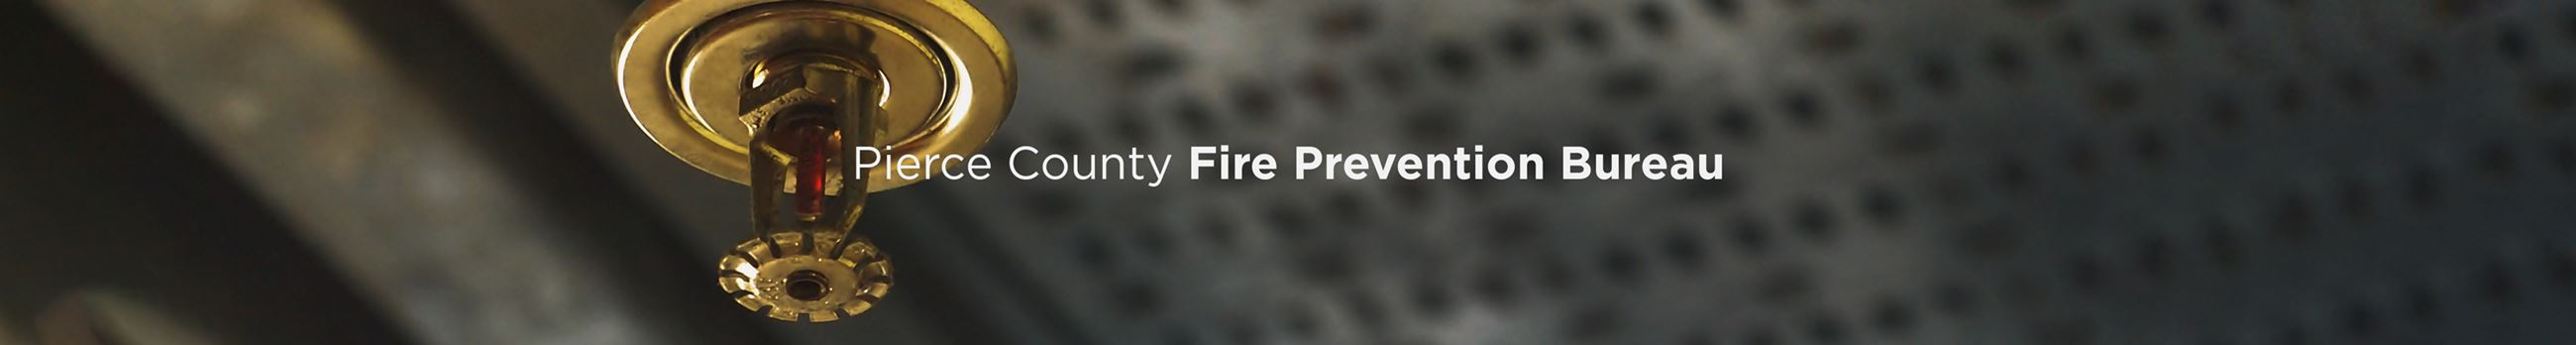 Pierce County Fire Prevention Bureau